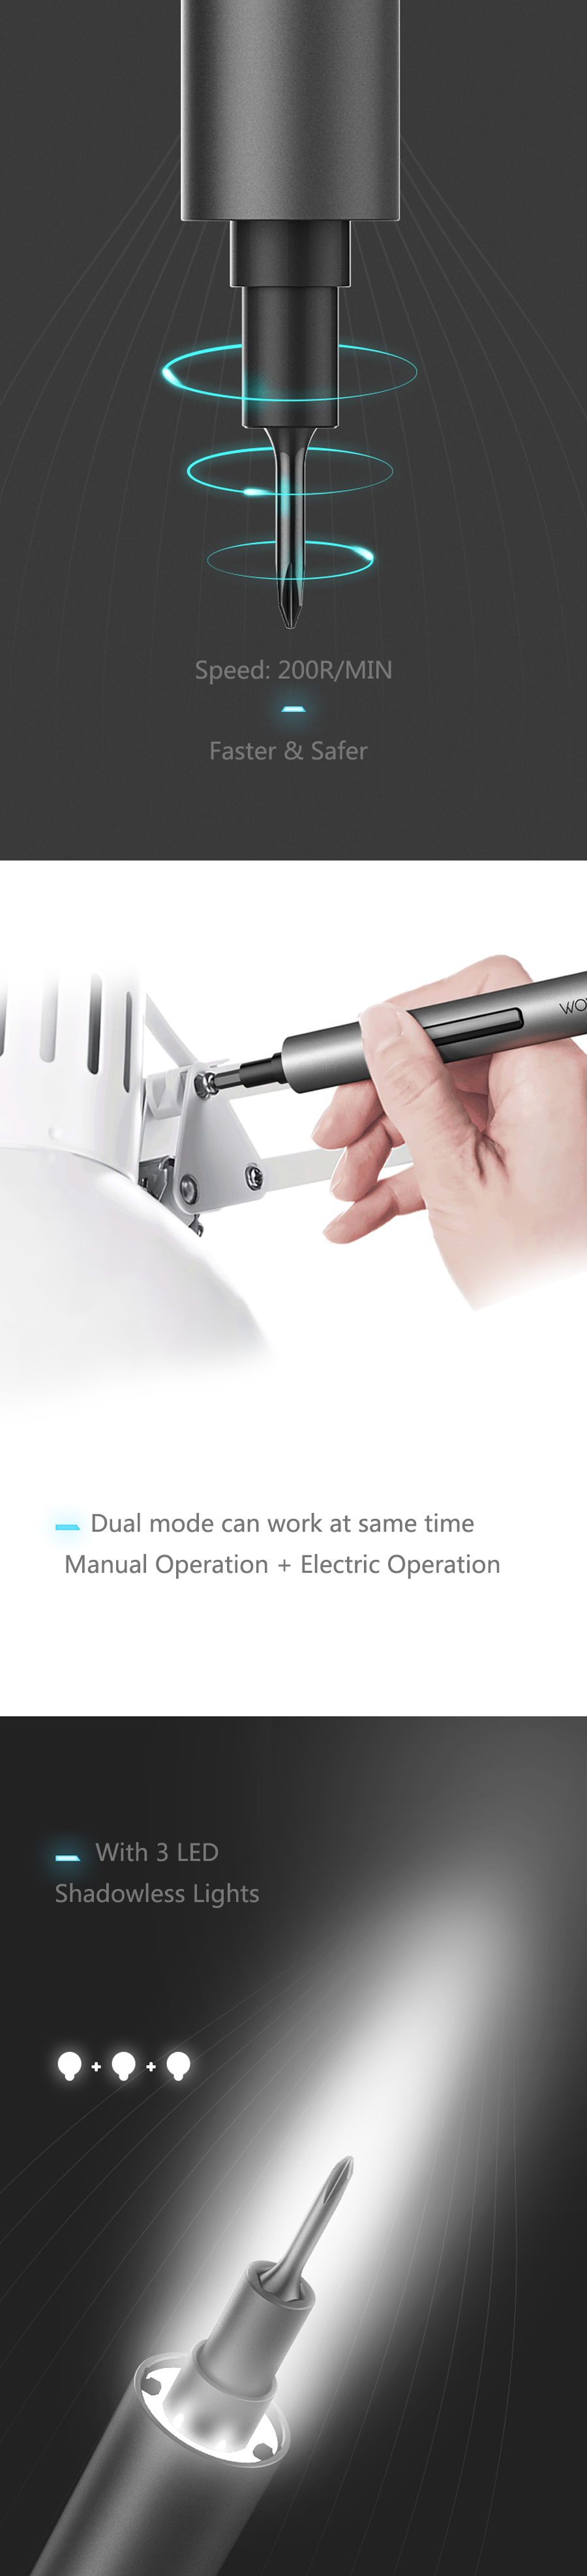 XIAOMI Wowstick 1F+ 64 In 1 Electric Screwdriver Cordless Lithium-ion Charge LED Power Screwdriver